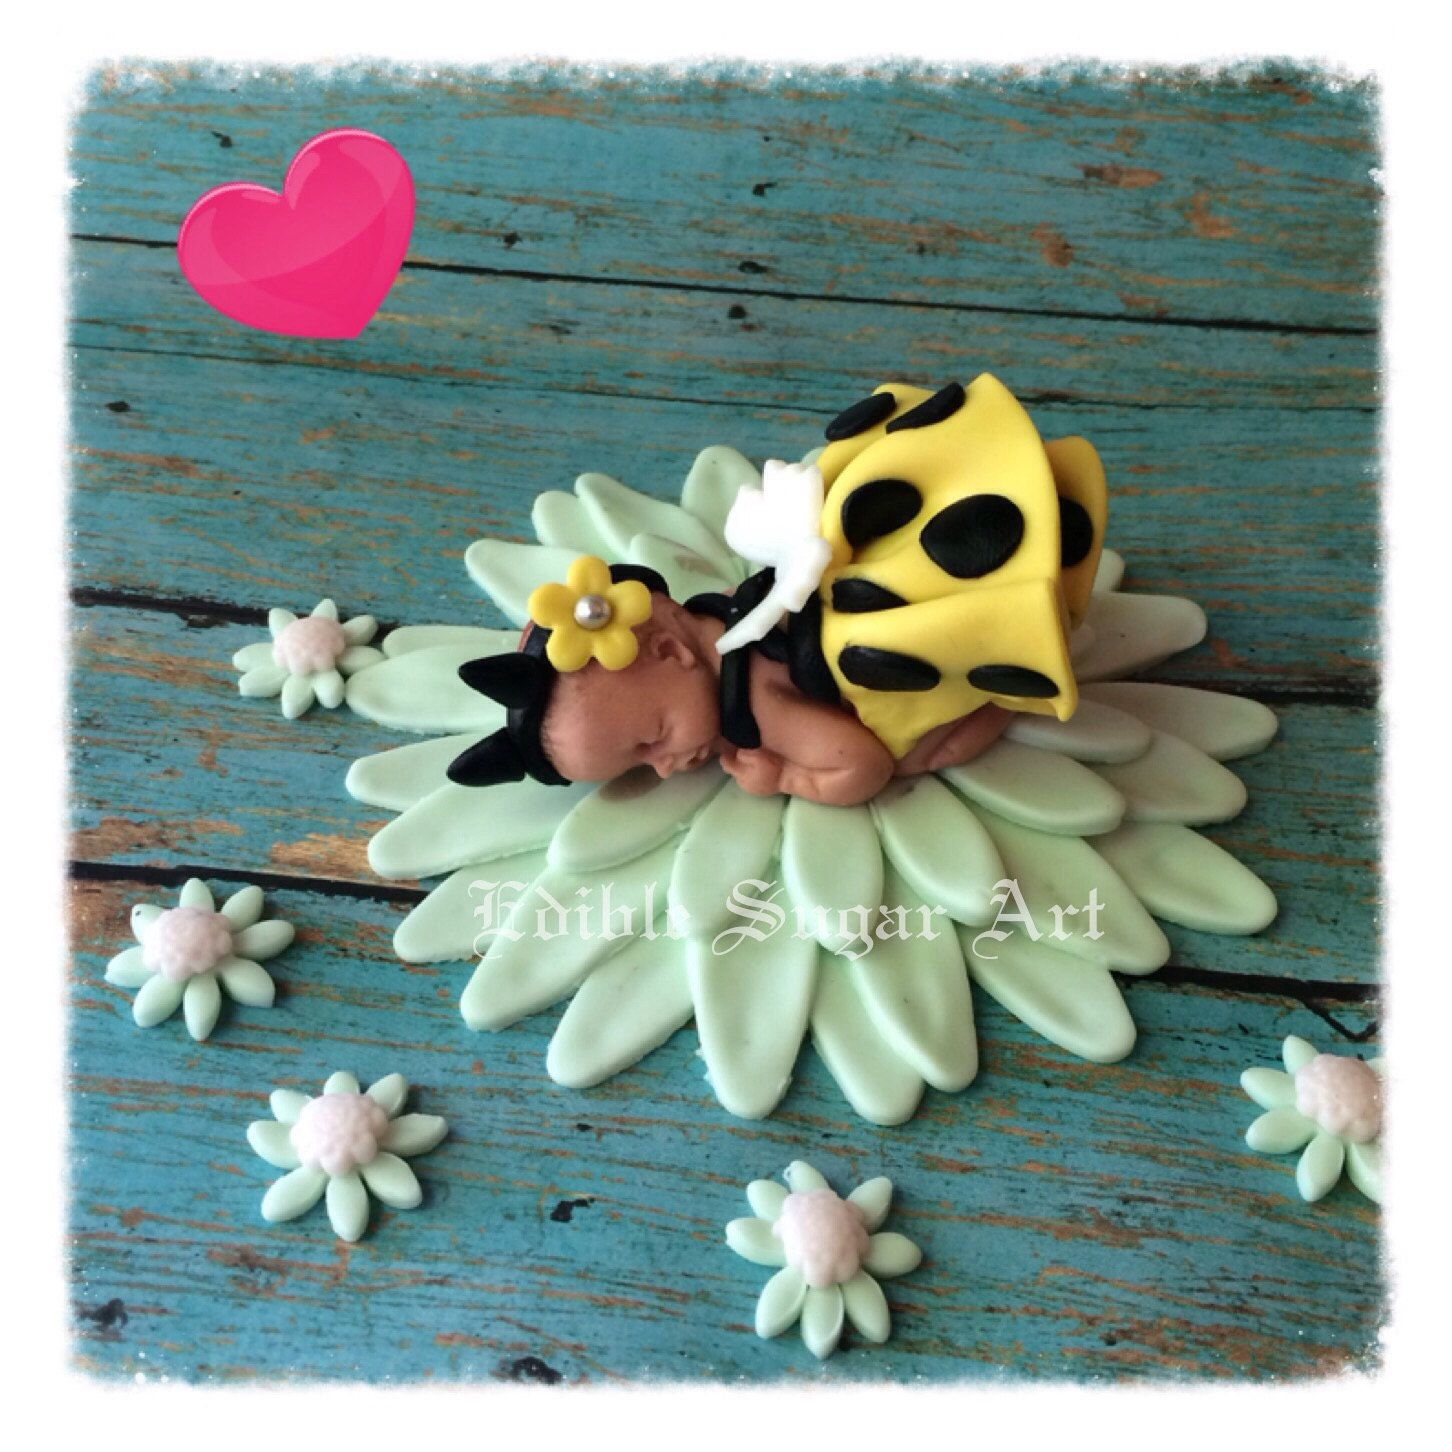 BA BEE BUMBLE BEe Shower Cake Topper Fondant Toppers Baby First Birthday Bumble Bee Flower Decorations Favors Edible